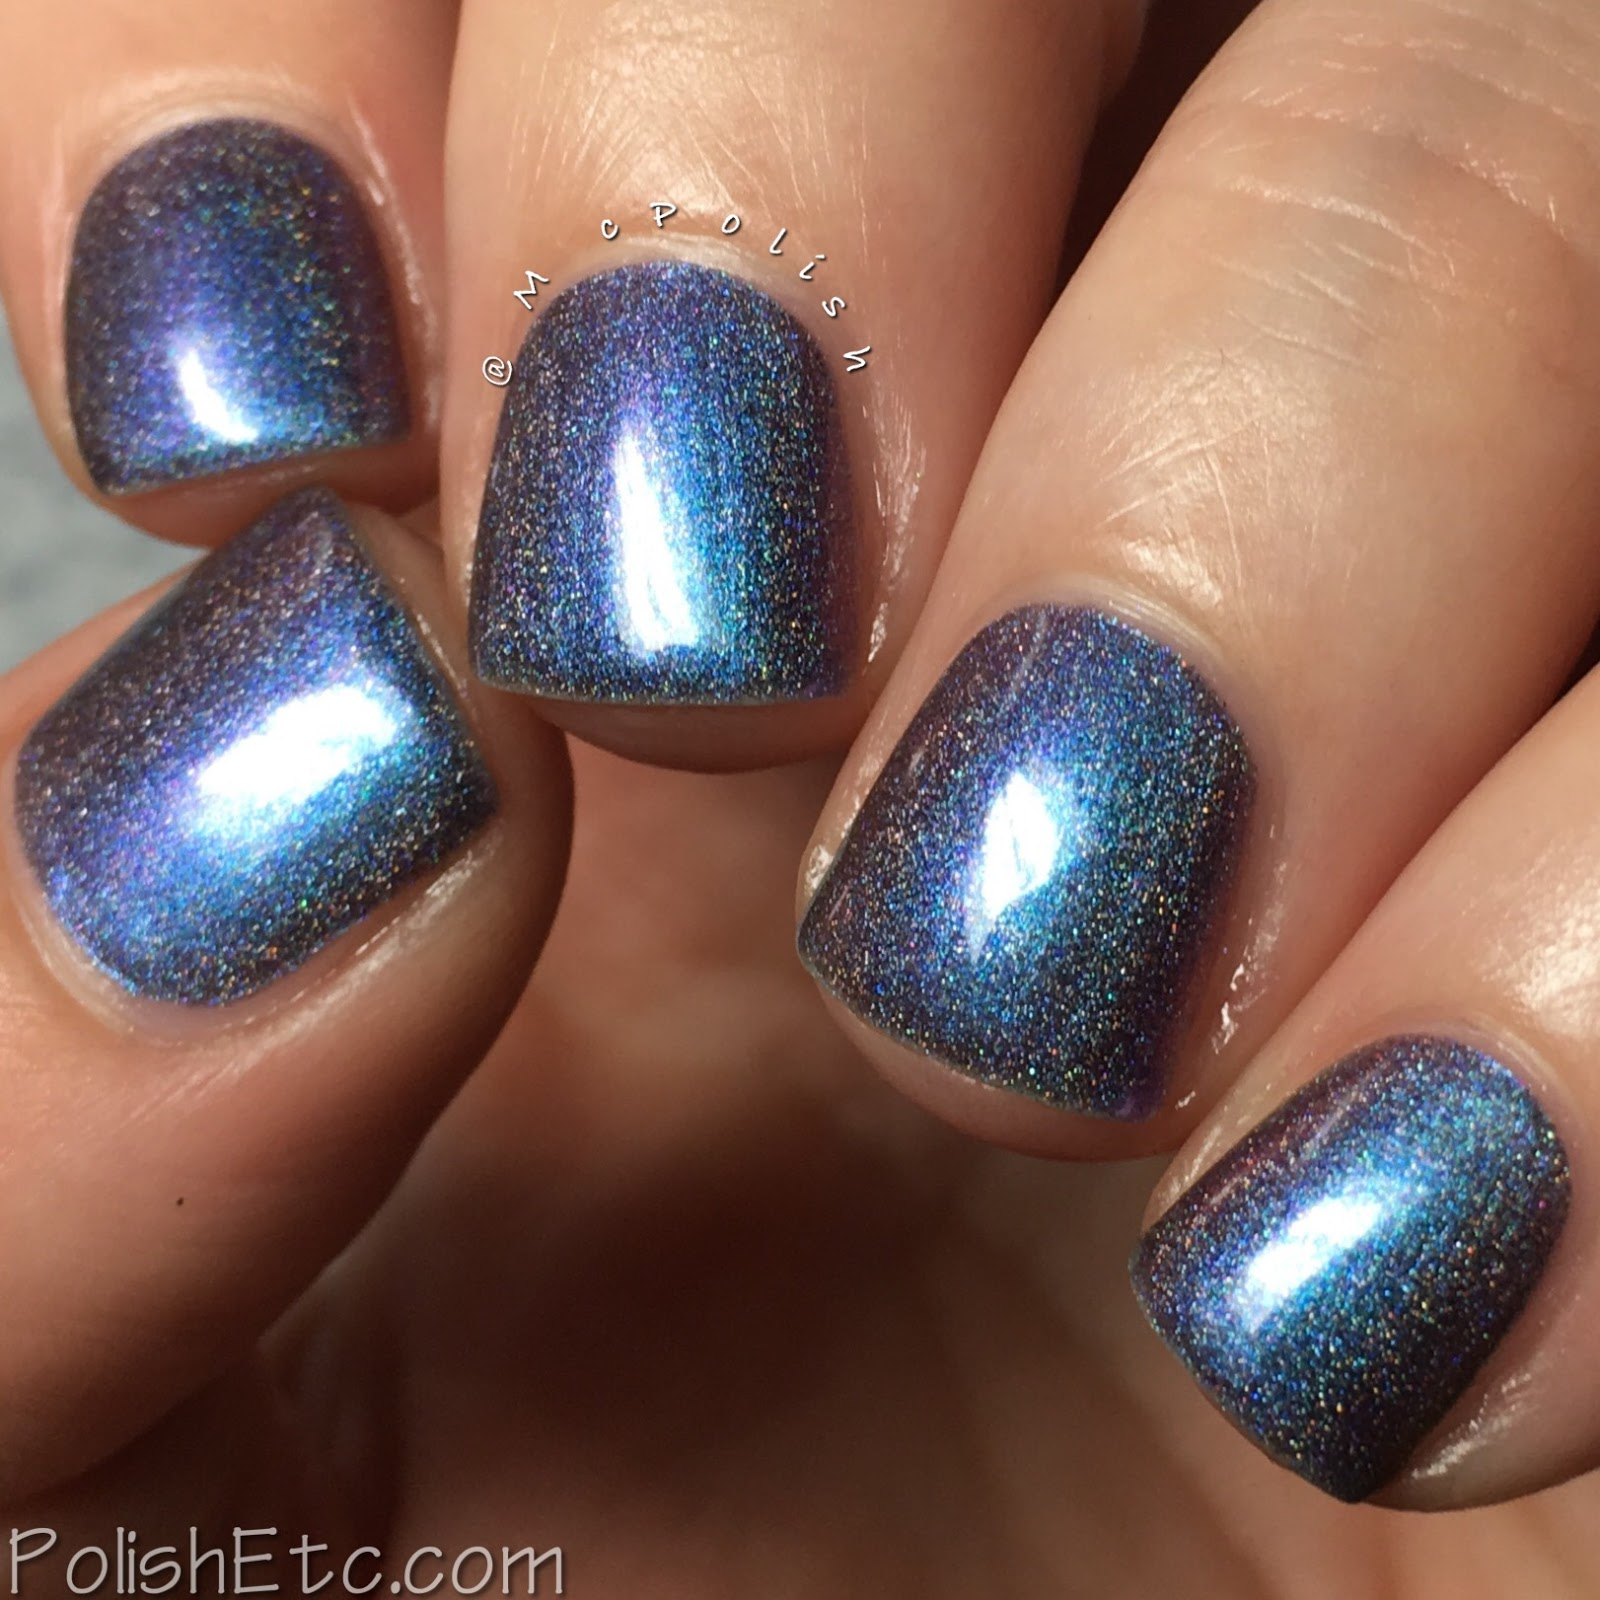 Candy Lacquer - The Twilight Zone Collection - McPolish - The Eye of the Beholder